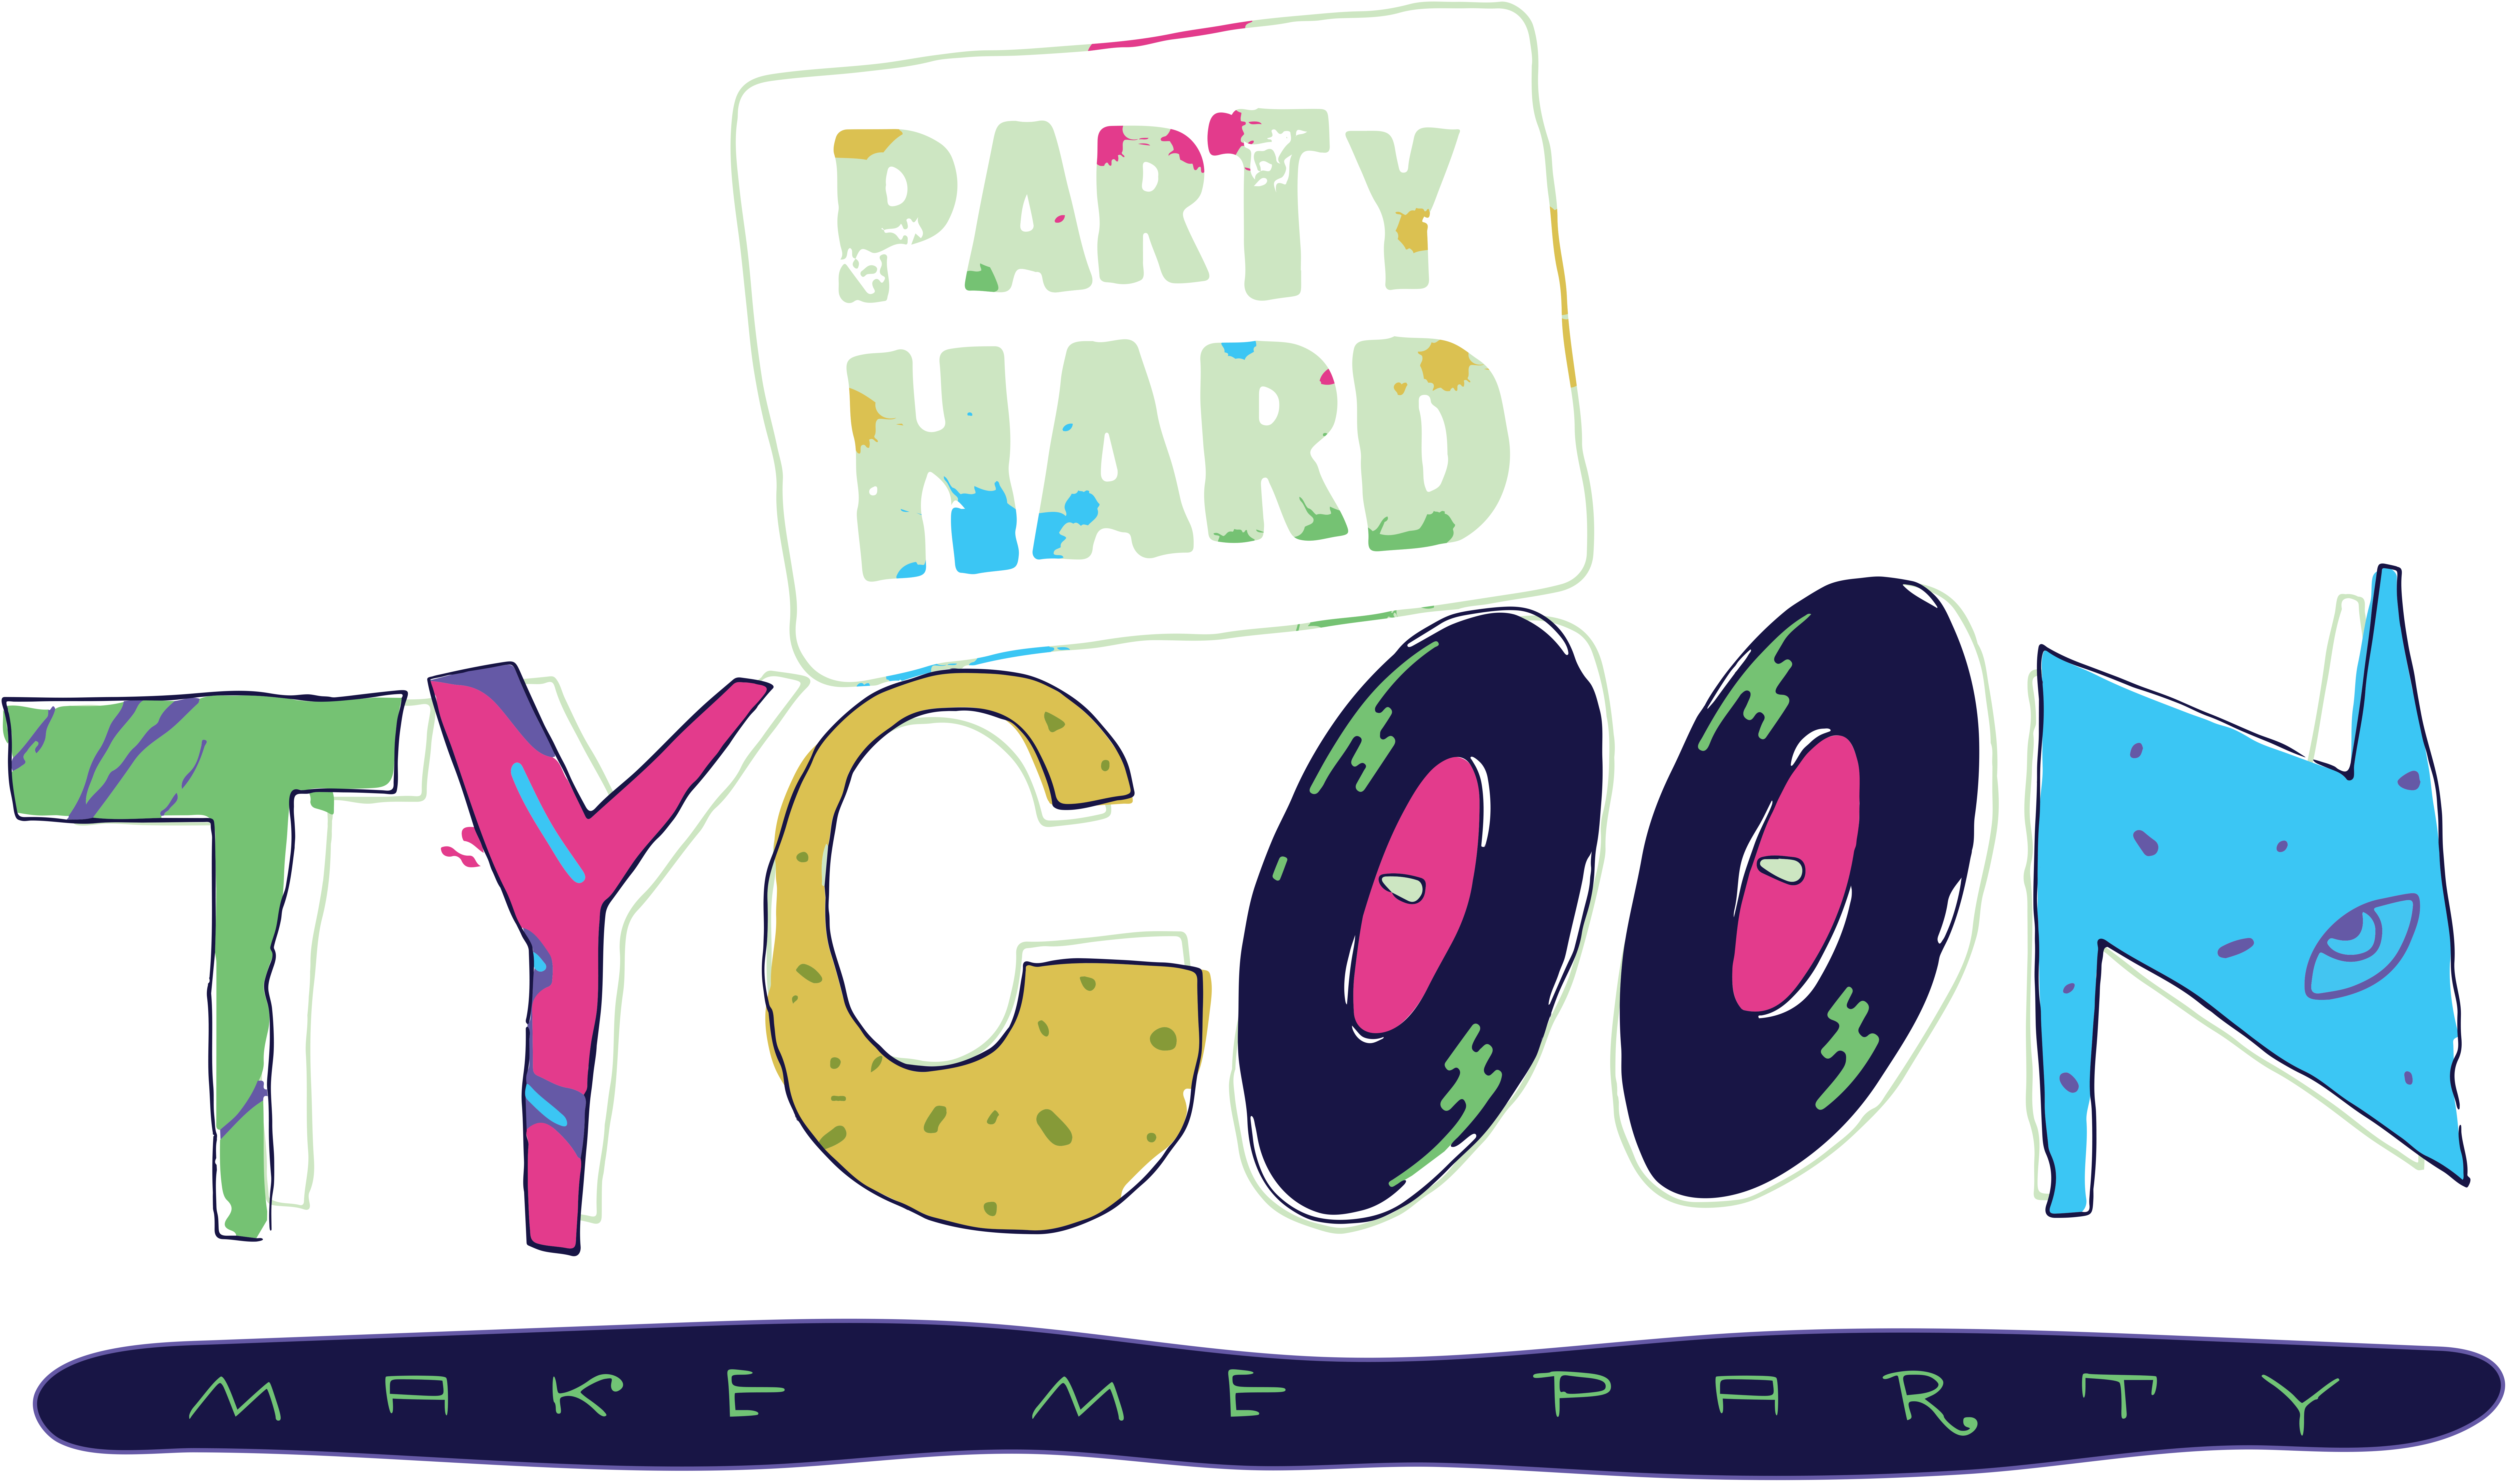 Party Hard Tycoon Announced by tinyBuild GAMES